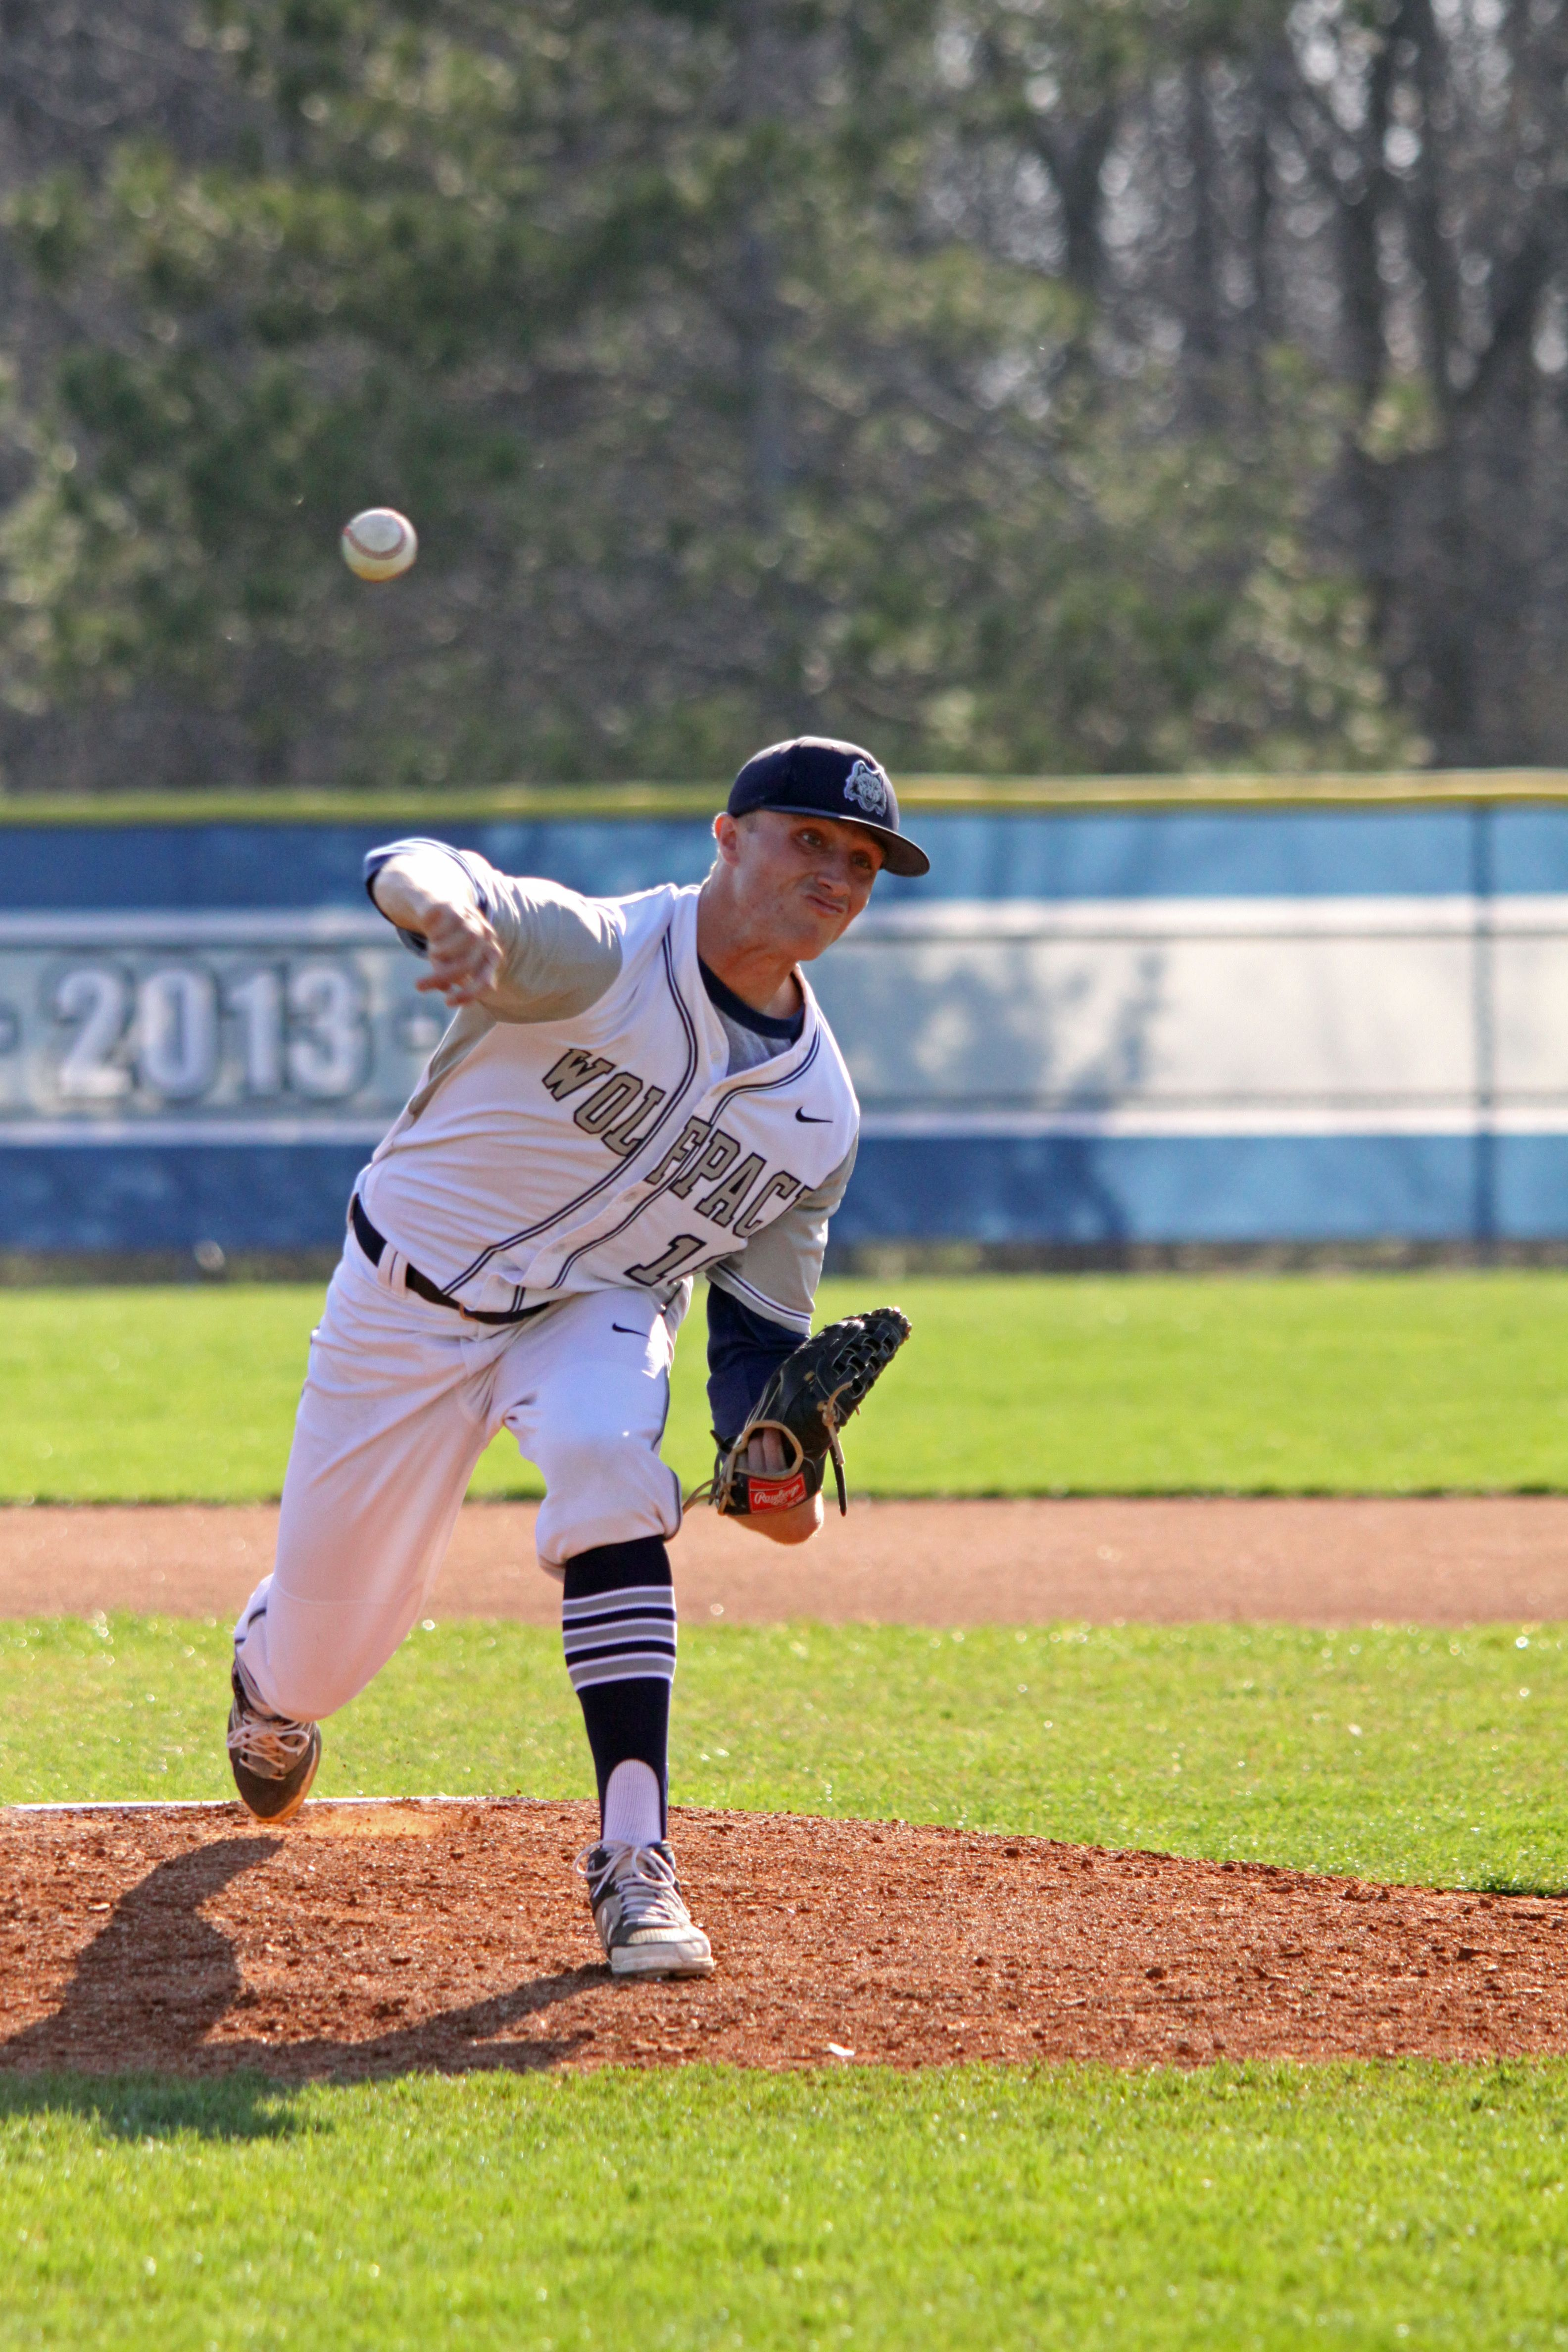 Ryne Blanton Is 10th In The Madison College Baseball Records Books With A 2 06 Era In Two Seasons Play Baseball Baseball Records Northern Illinois University